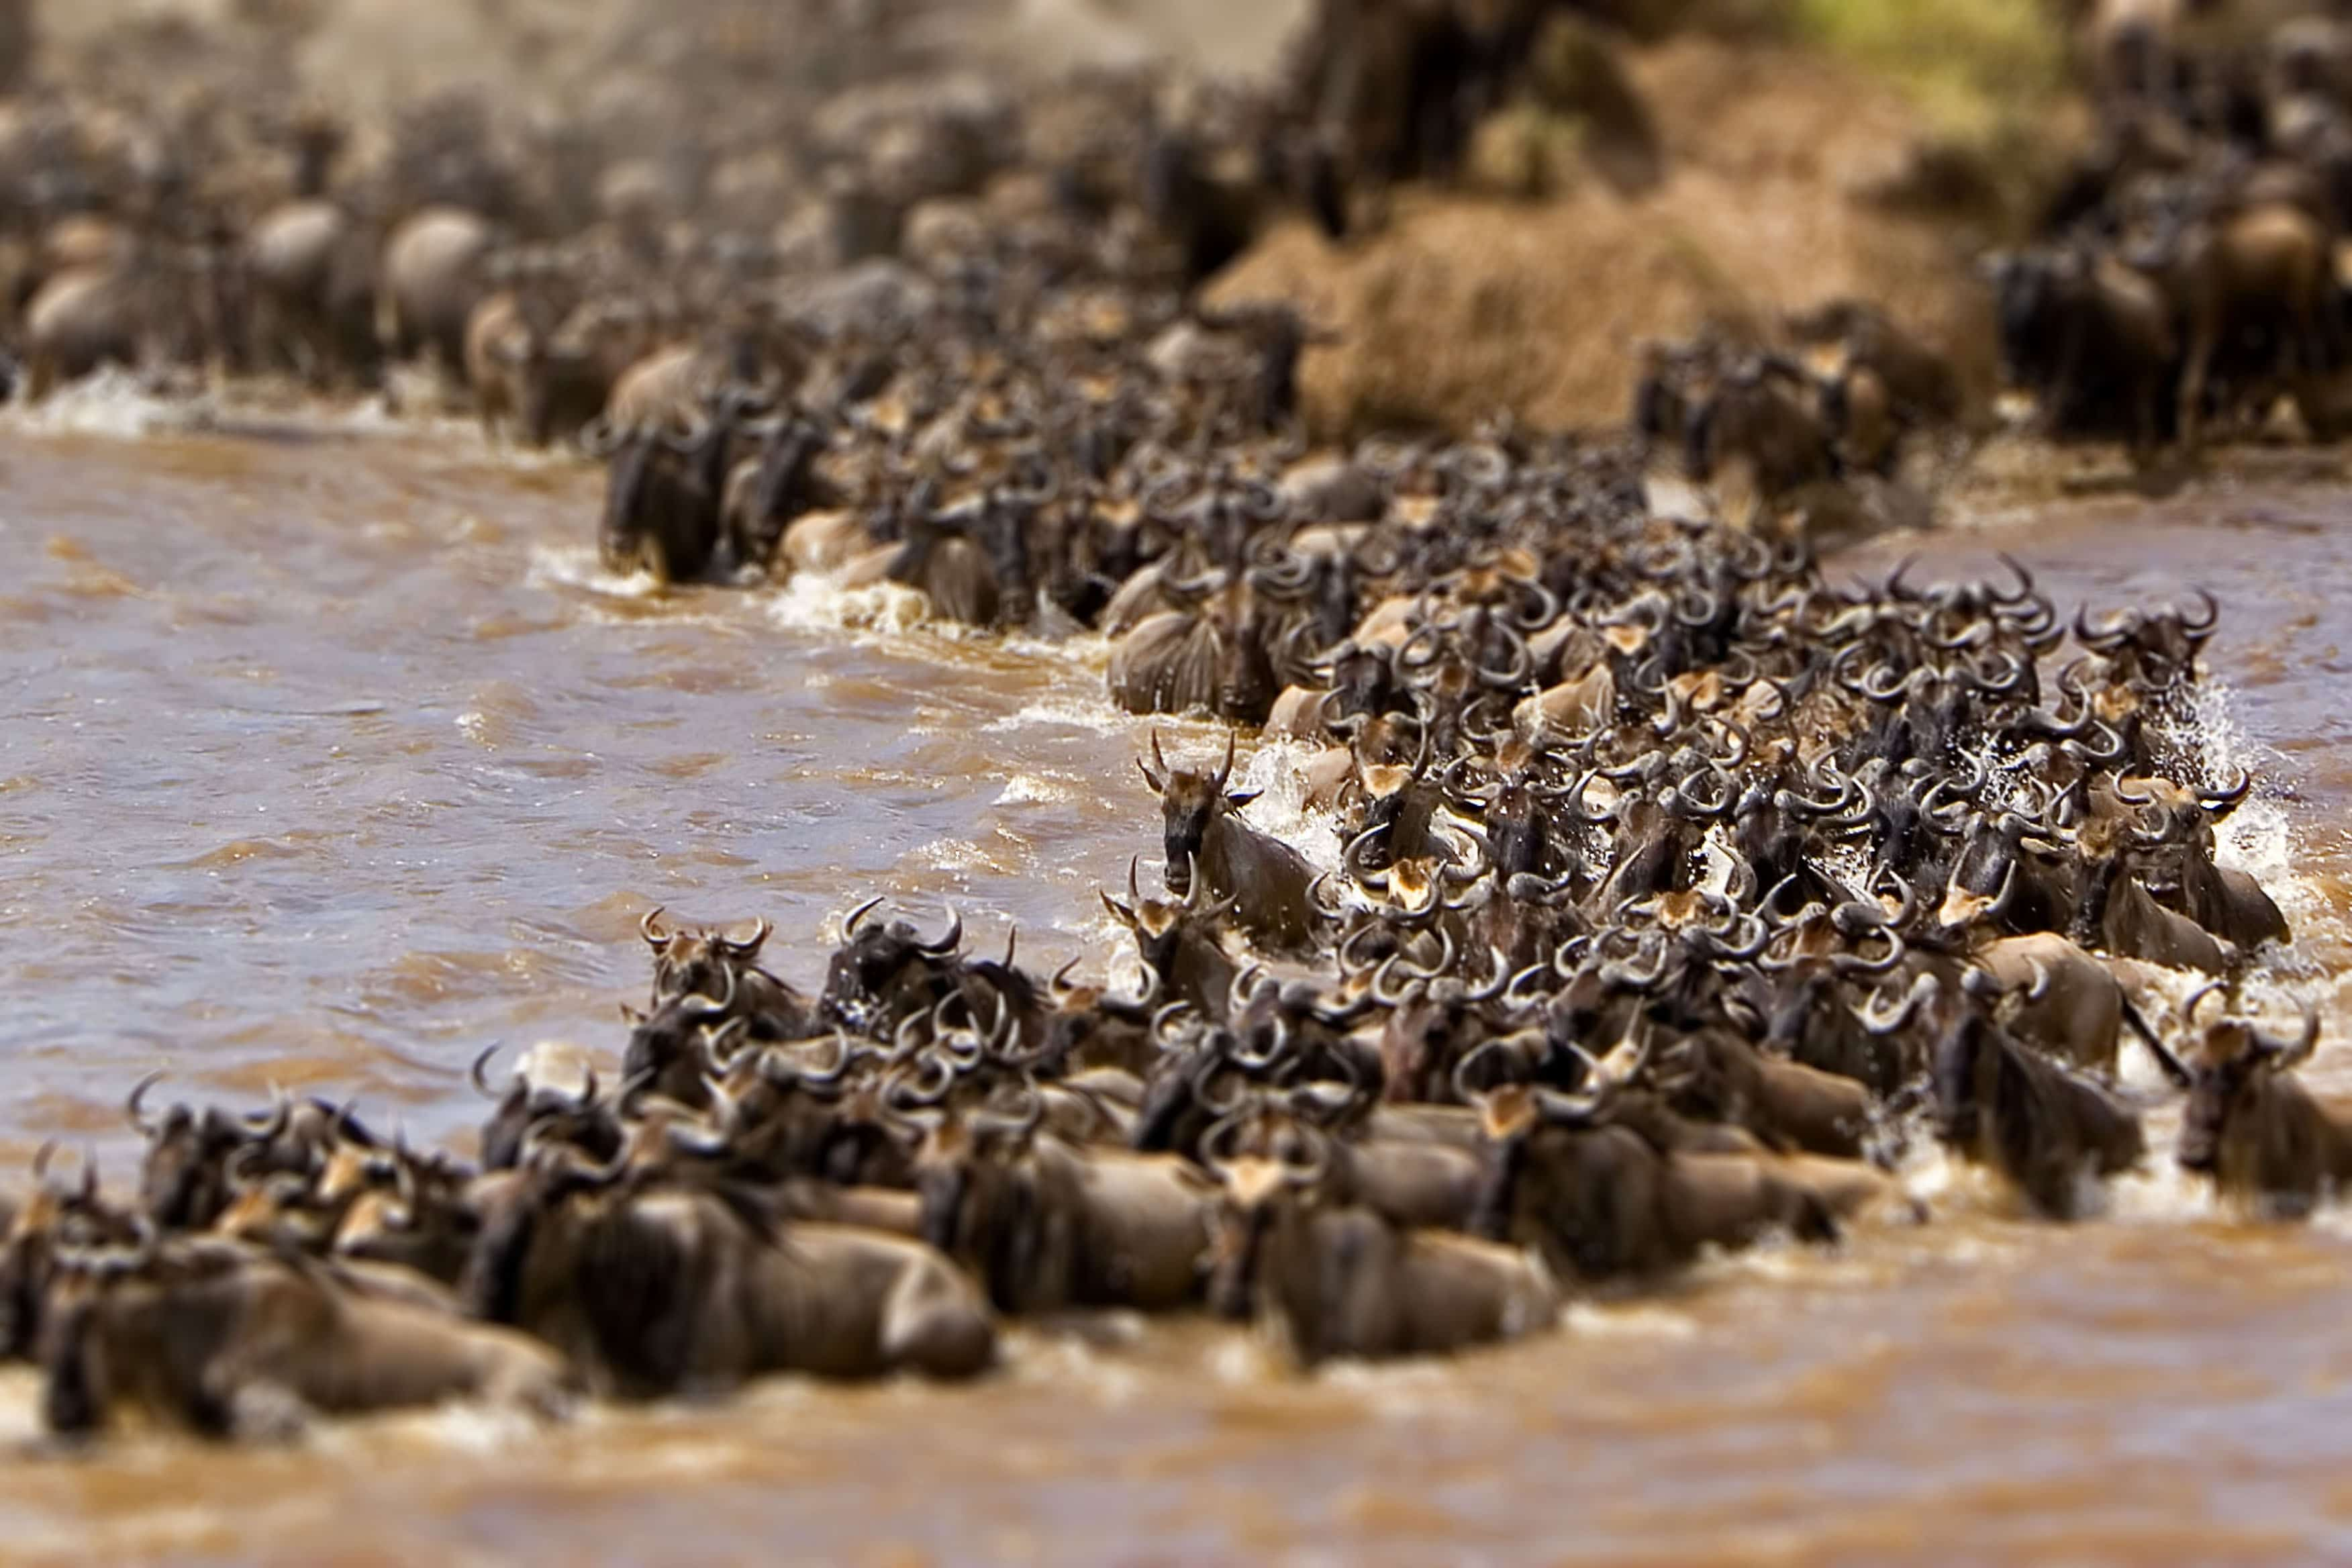 Wildebeests crossing a river